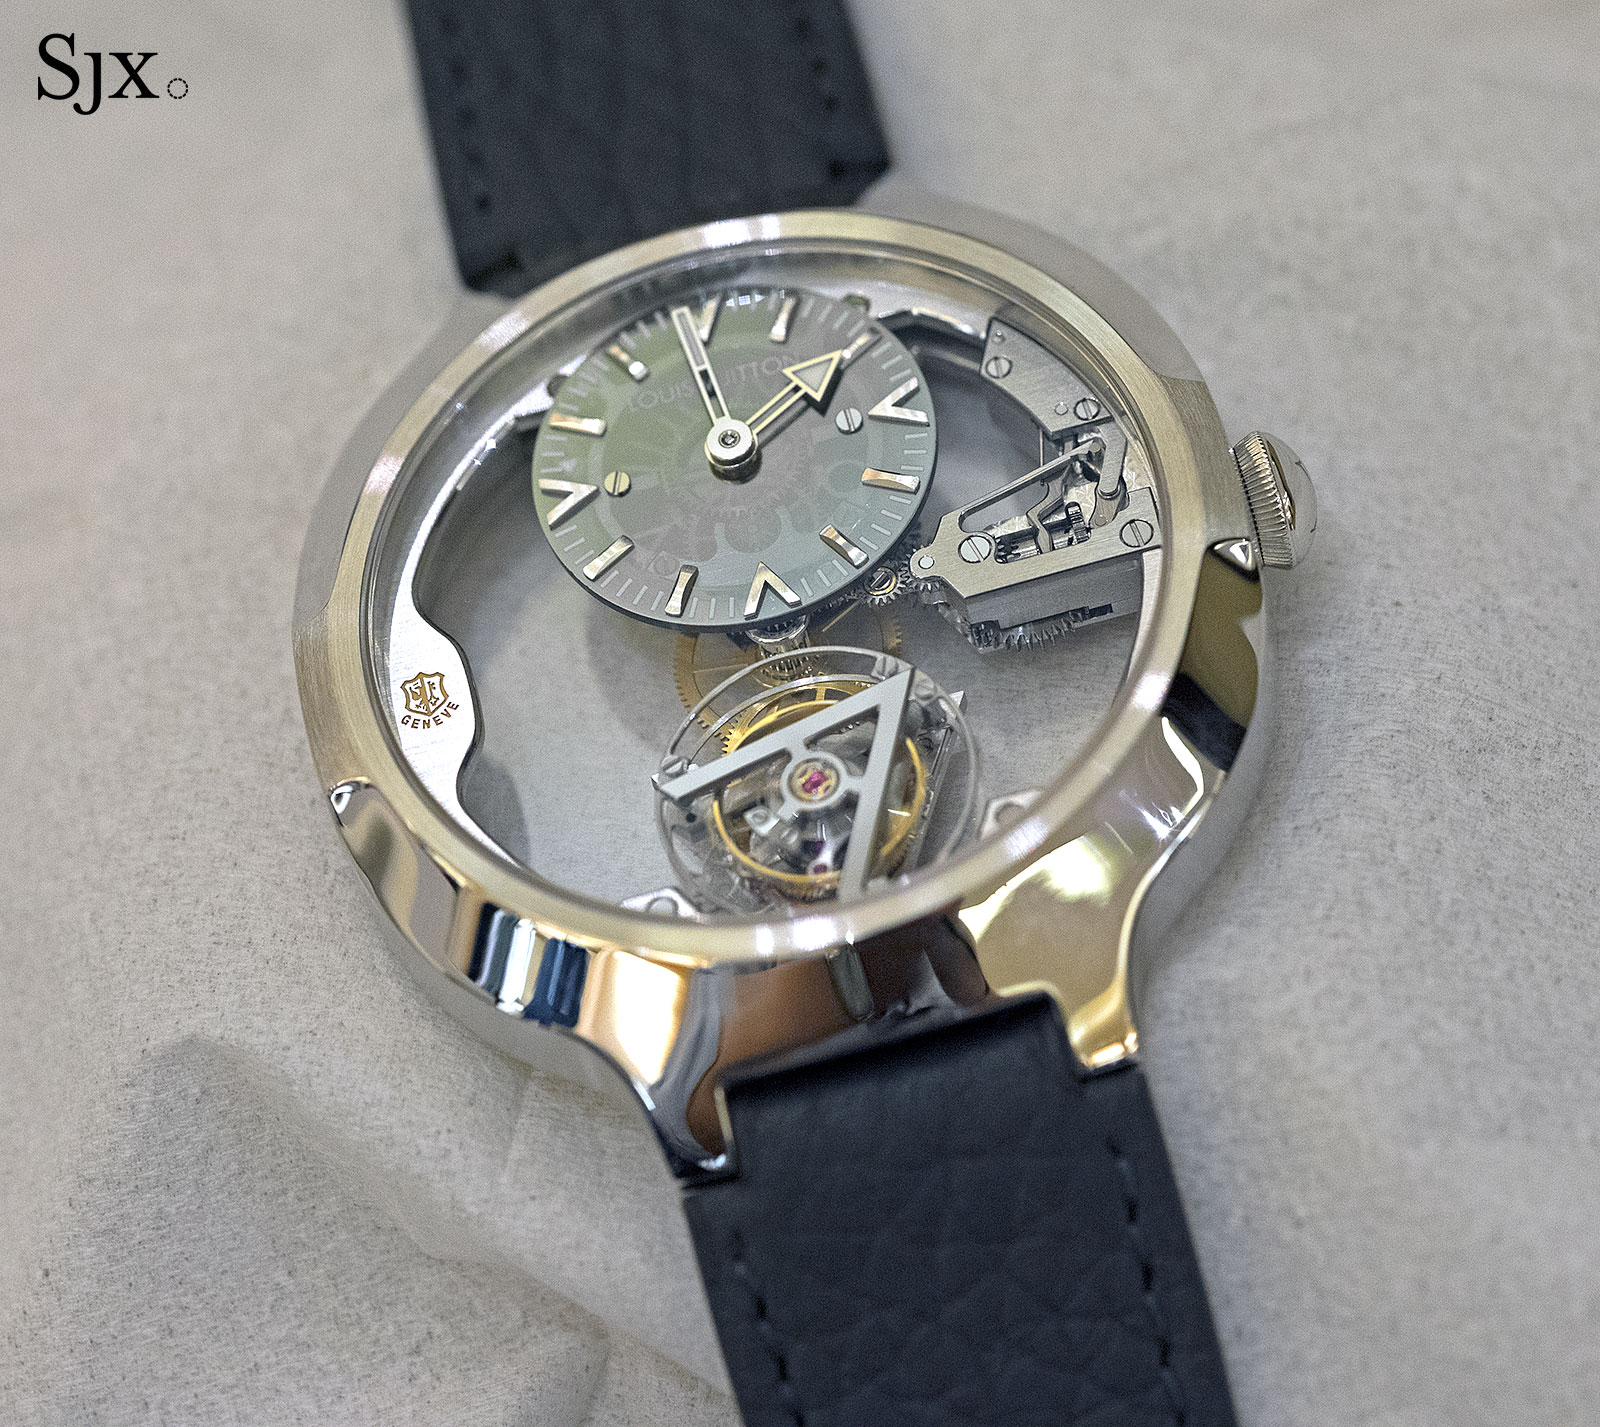 Louis Vuitton Flying Tourbillon Poinçon de Genève 5